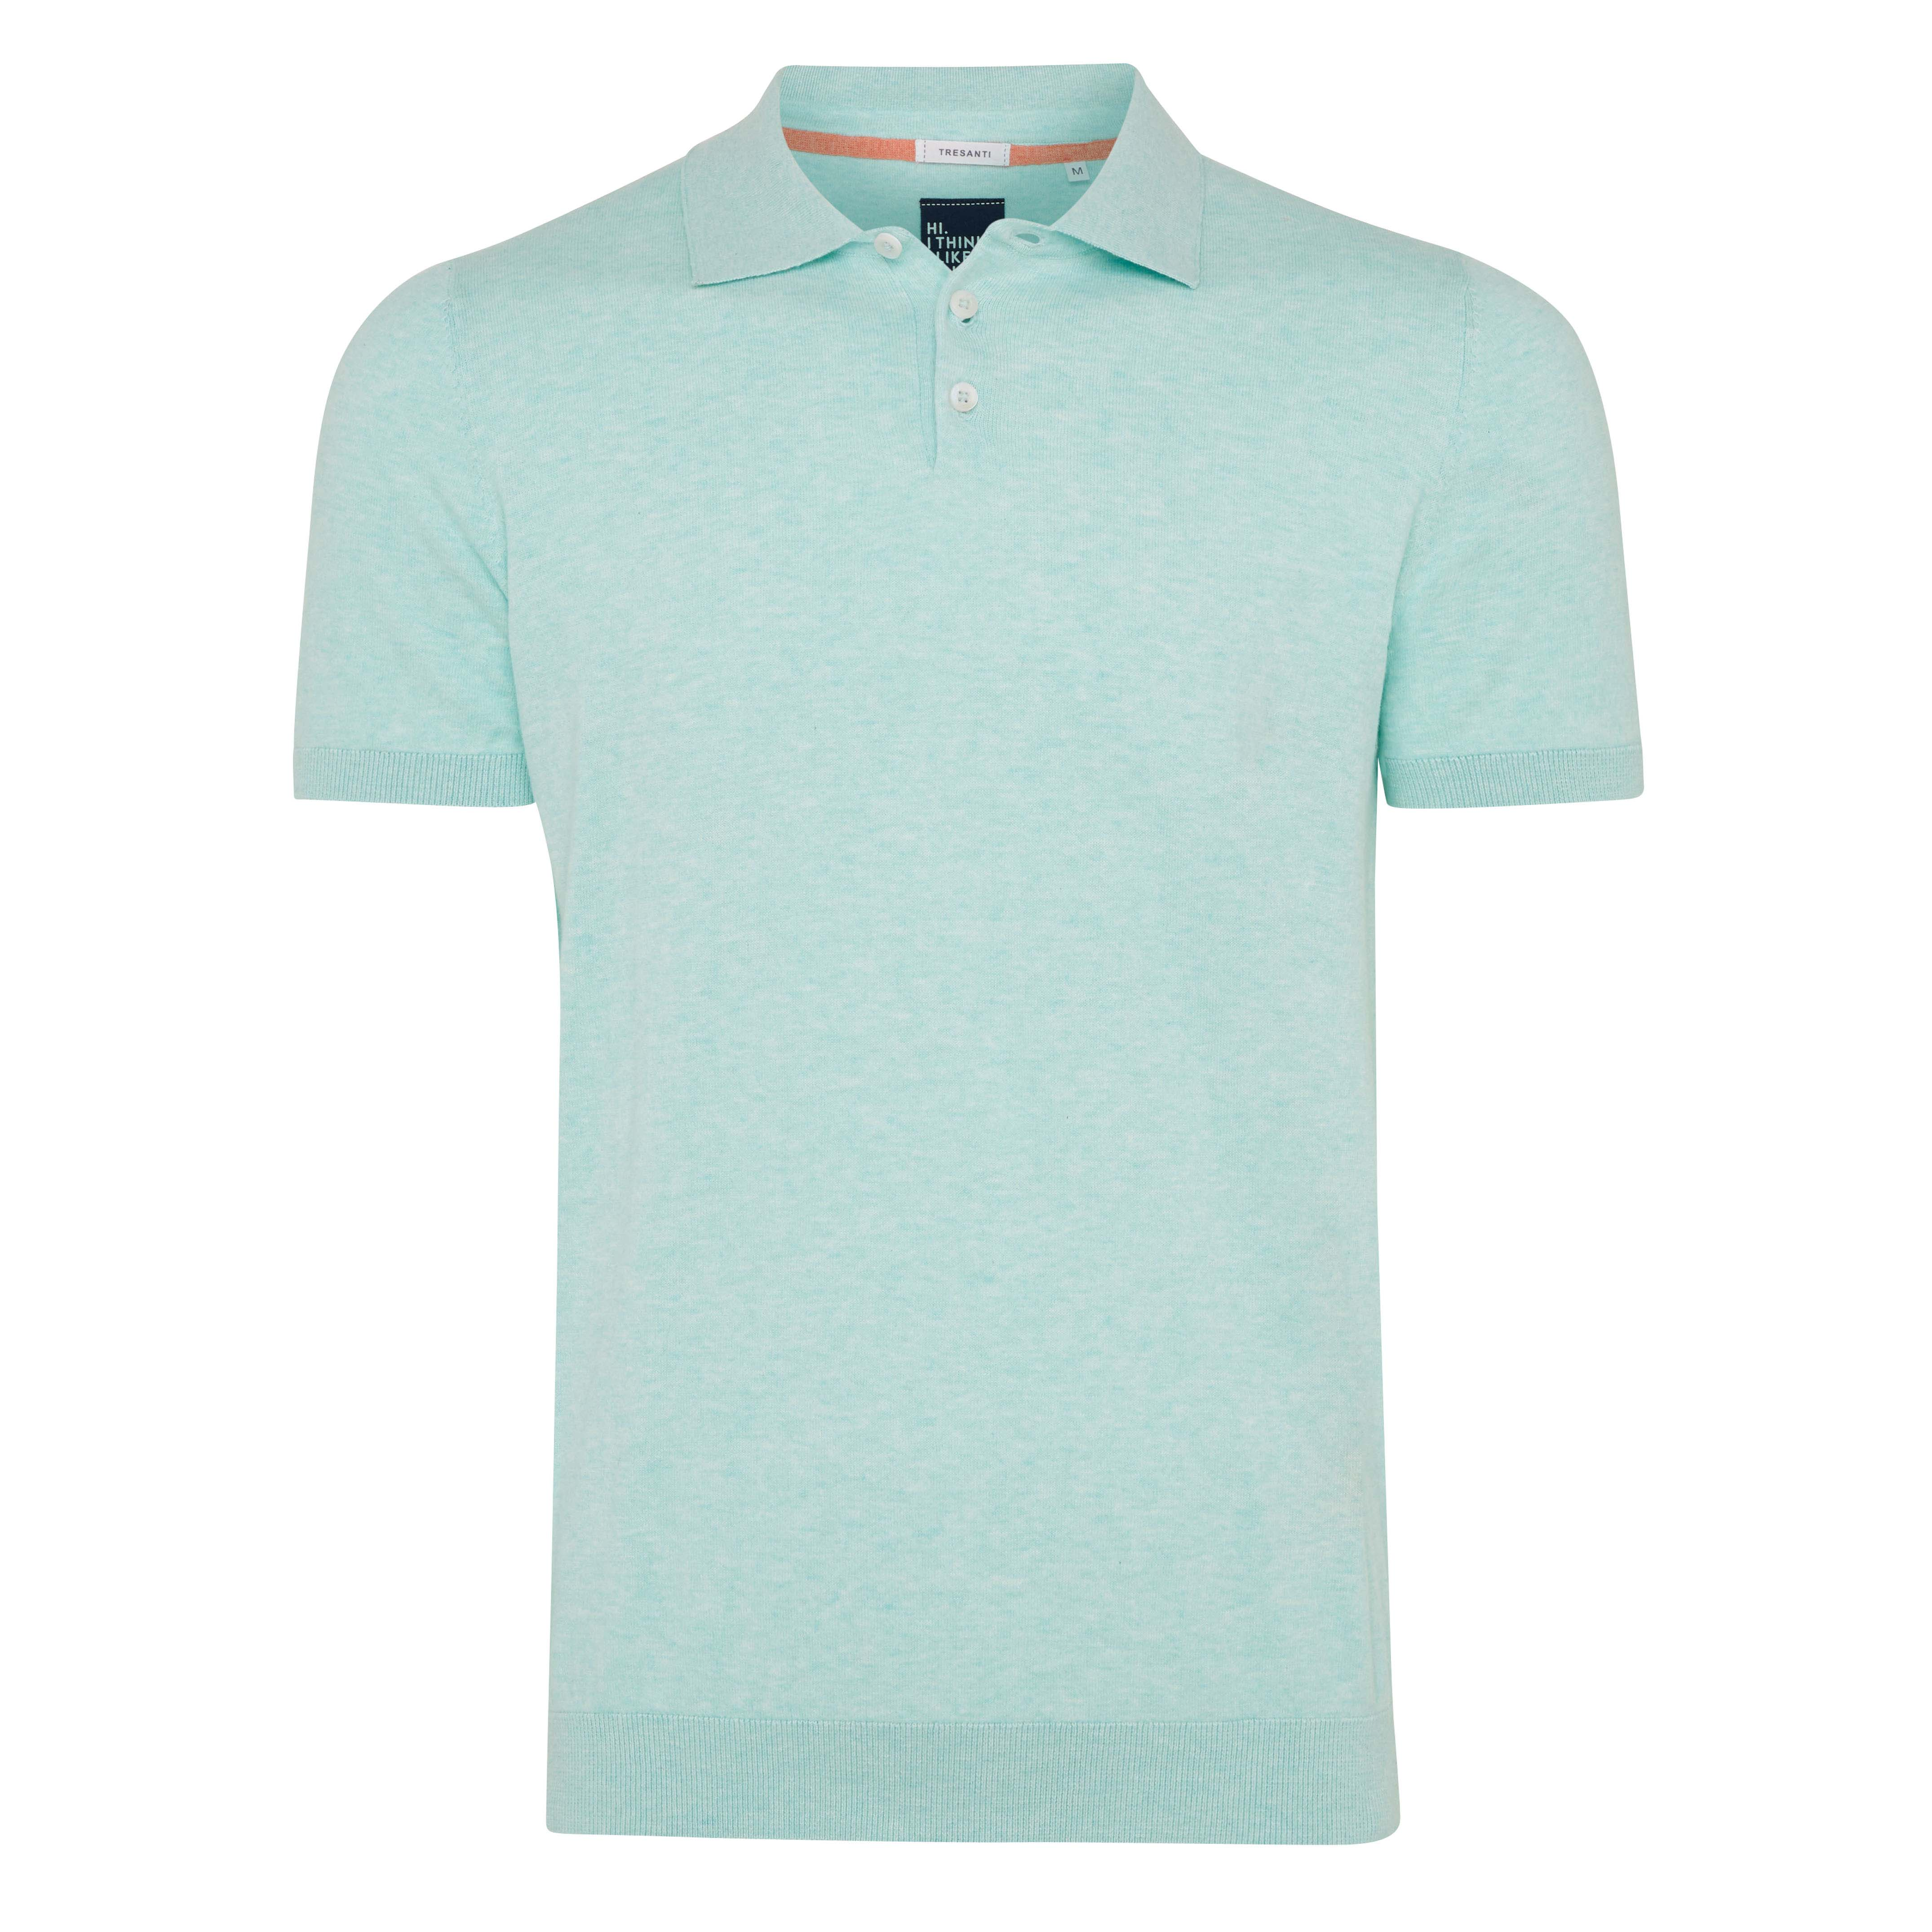 Trevor | Polo pullover mint green